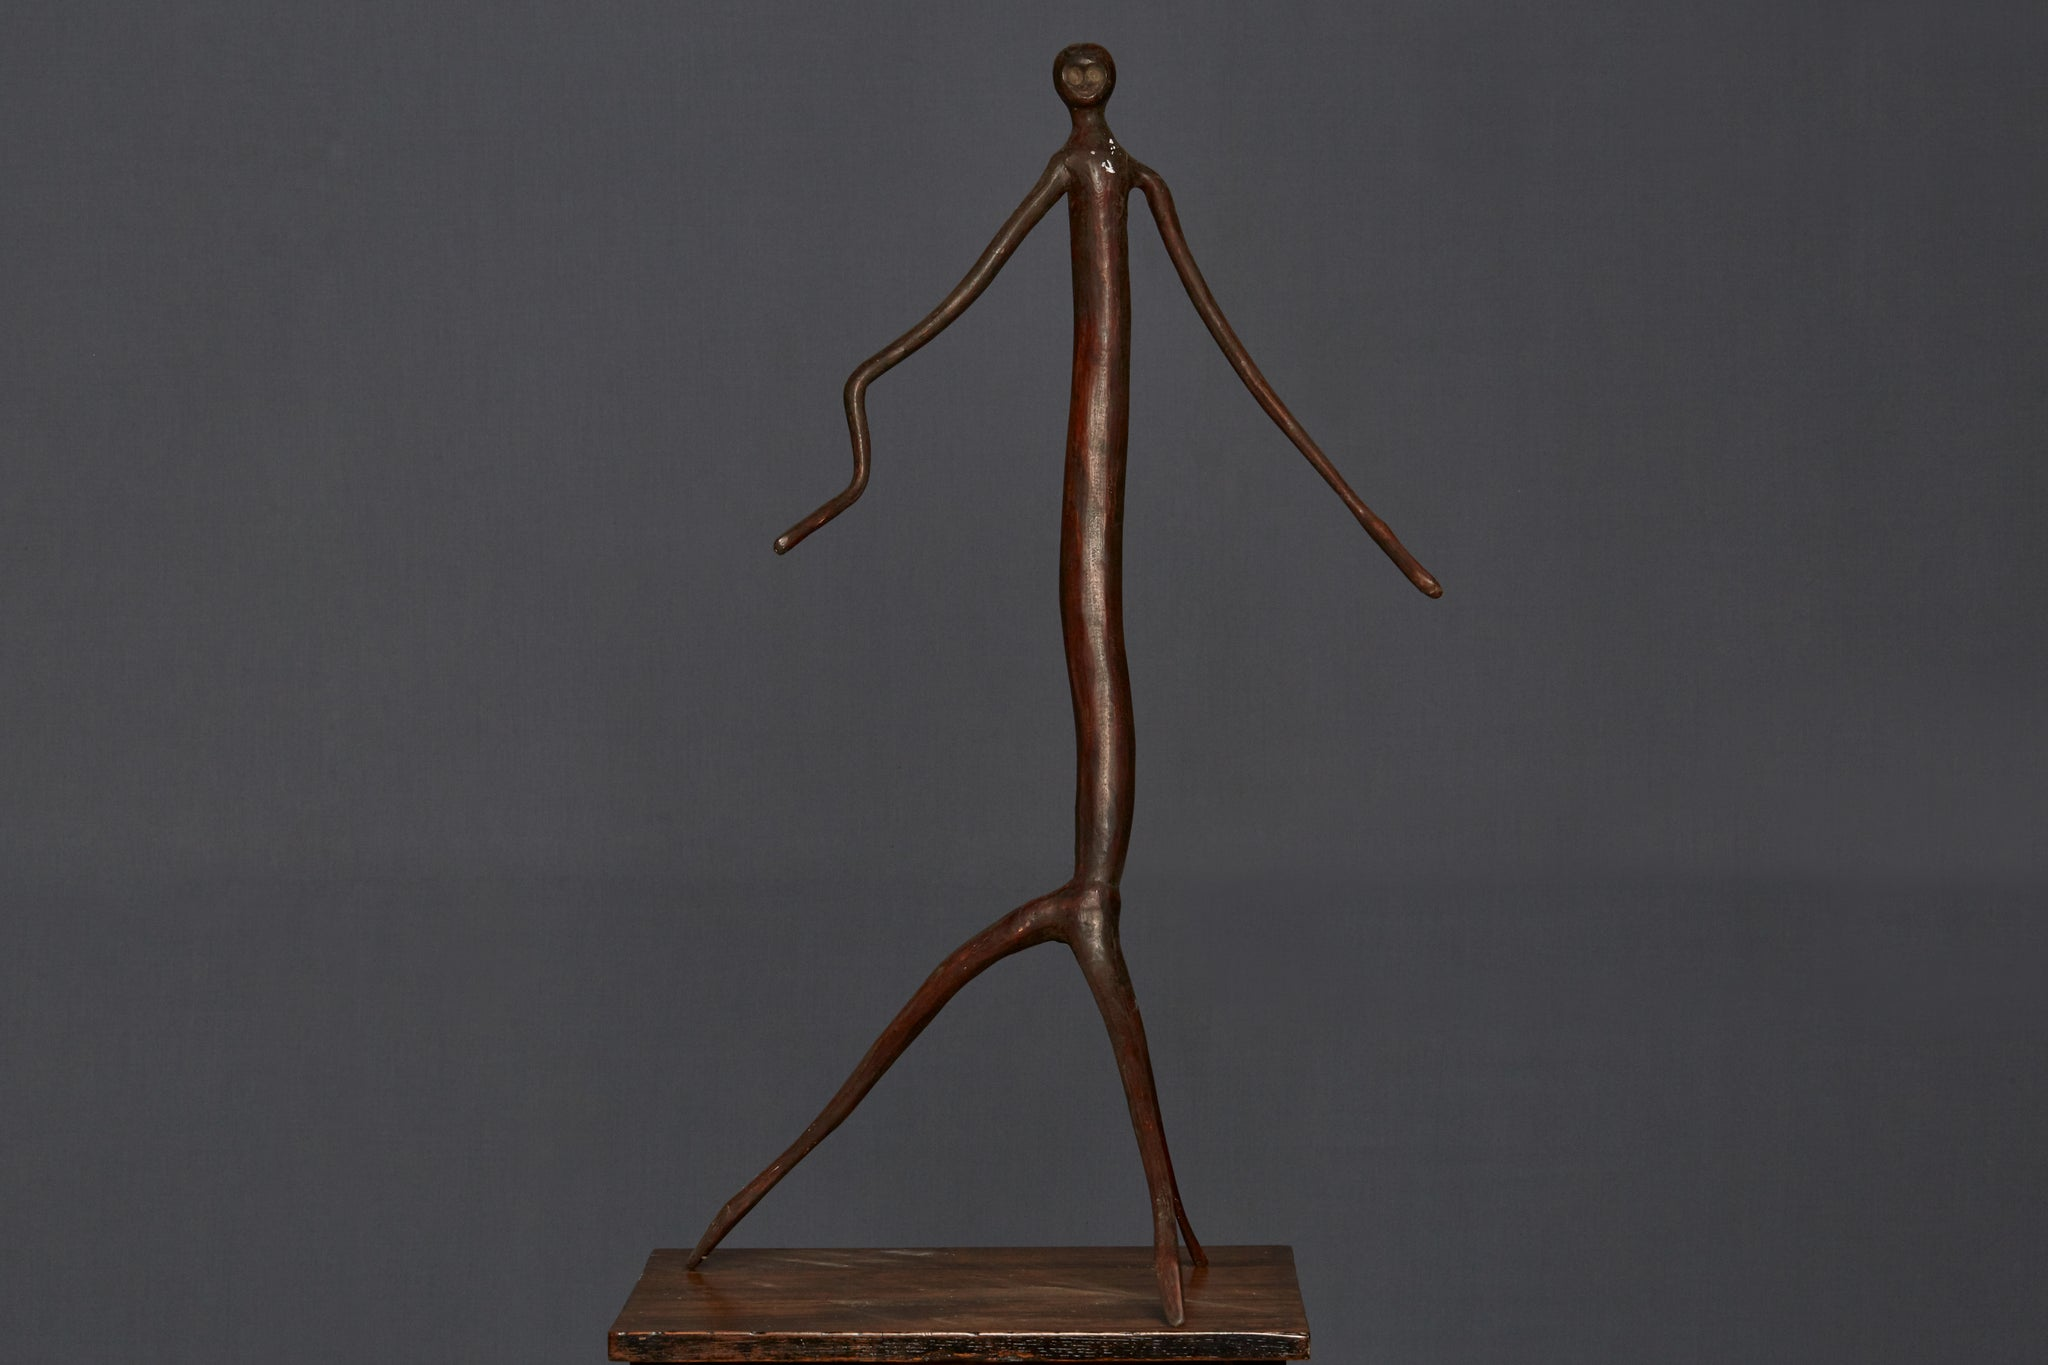 Large Mounted Mentawai Dancing Stick Figure